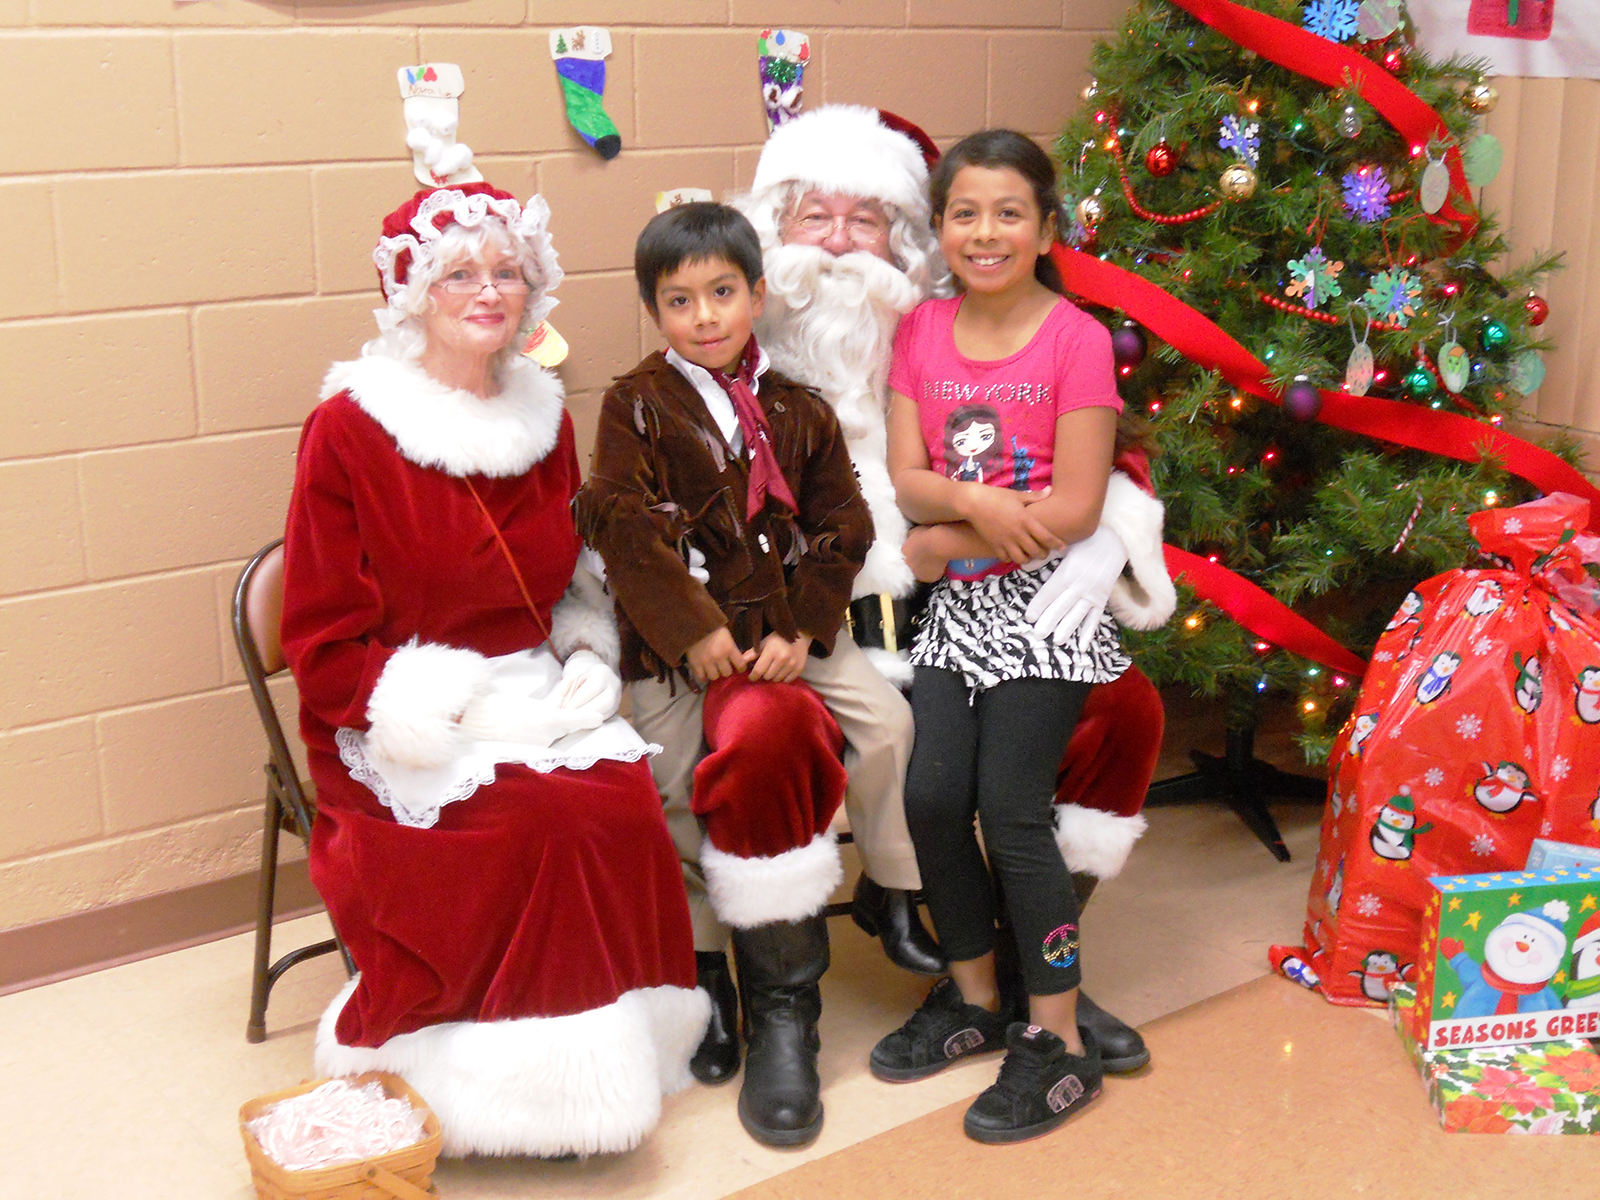 Spring Valley Breakfast with Santa